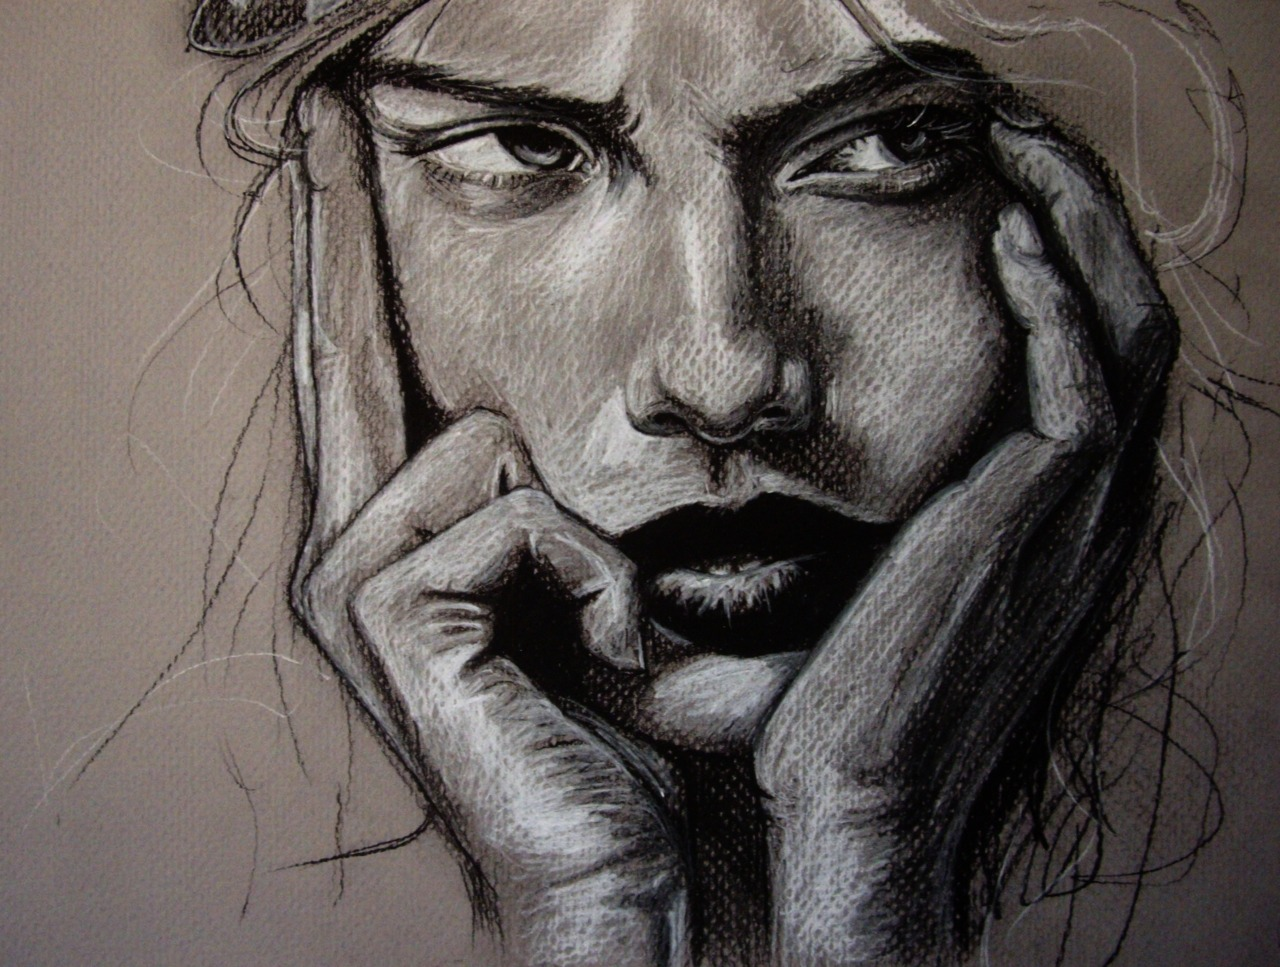 """The Glutton""  Charcoal on gray scale paper. See me make it here: http://www.youtube.com/watch?v=RwAK2wcTqmc www.olganoes.com www.facebook.com/olganoes Click image for prints, t-shirts & more!!!"